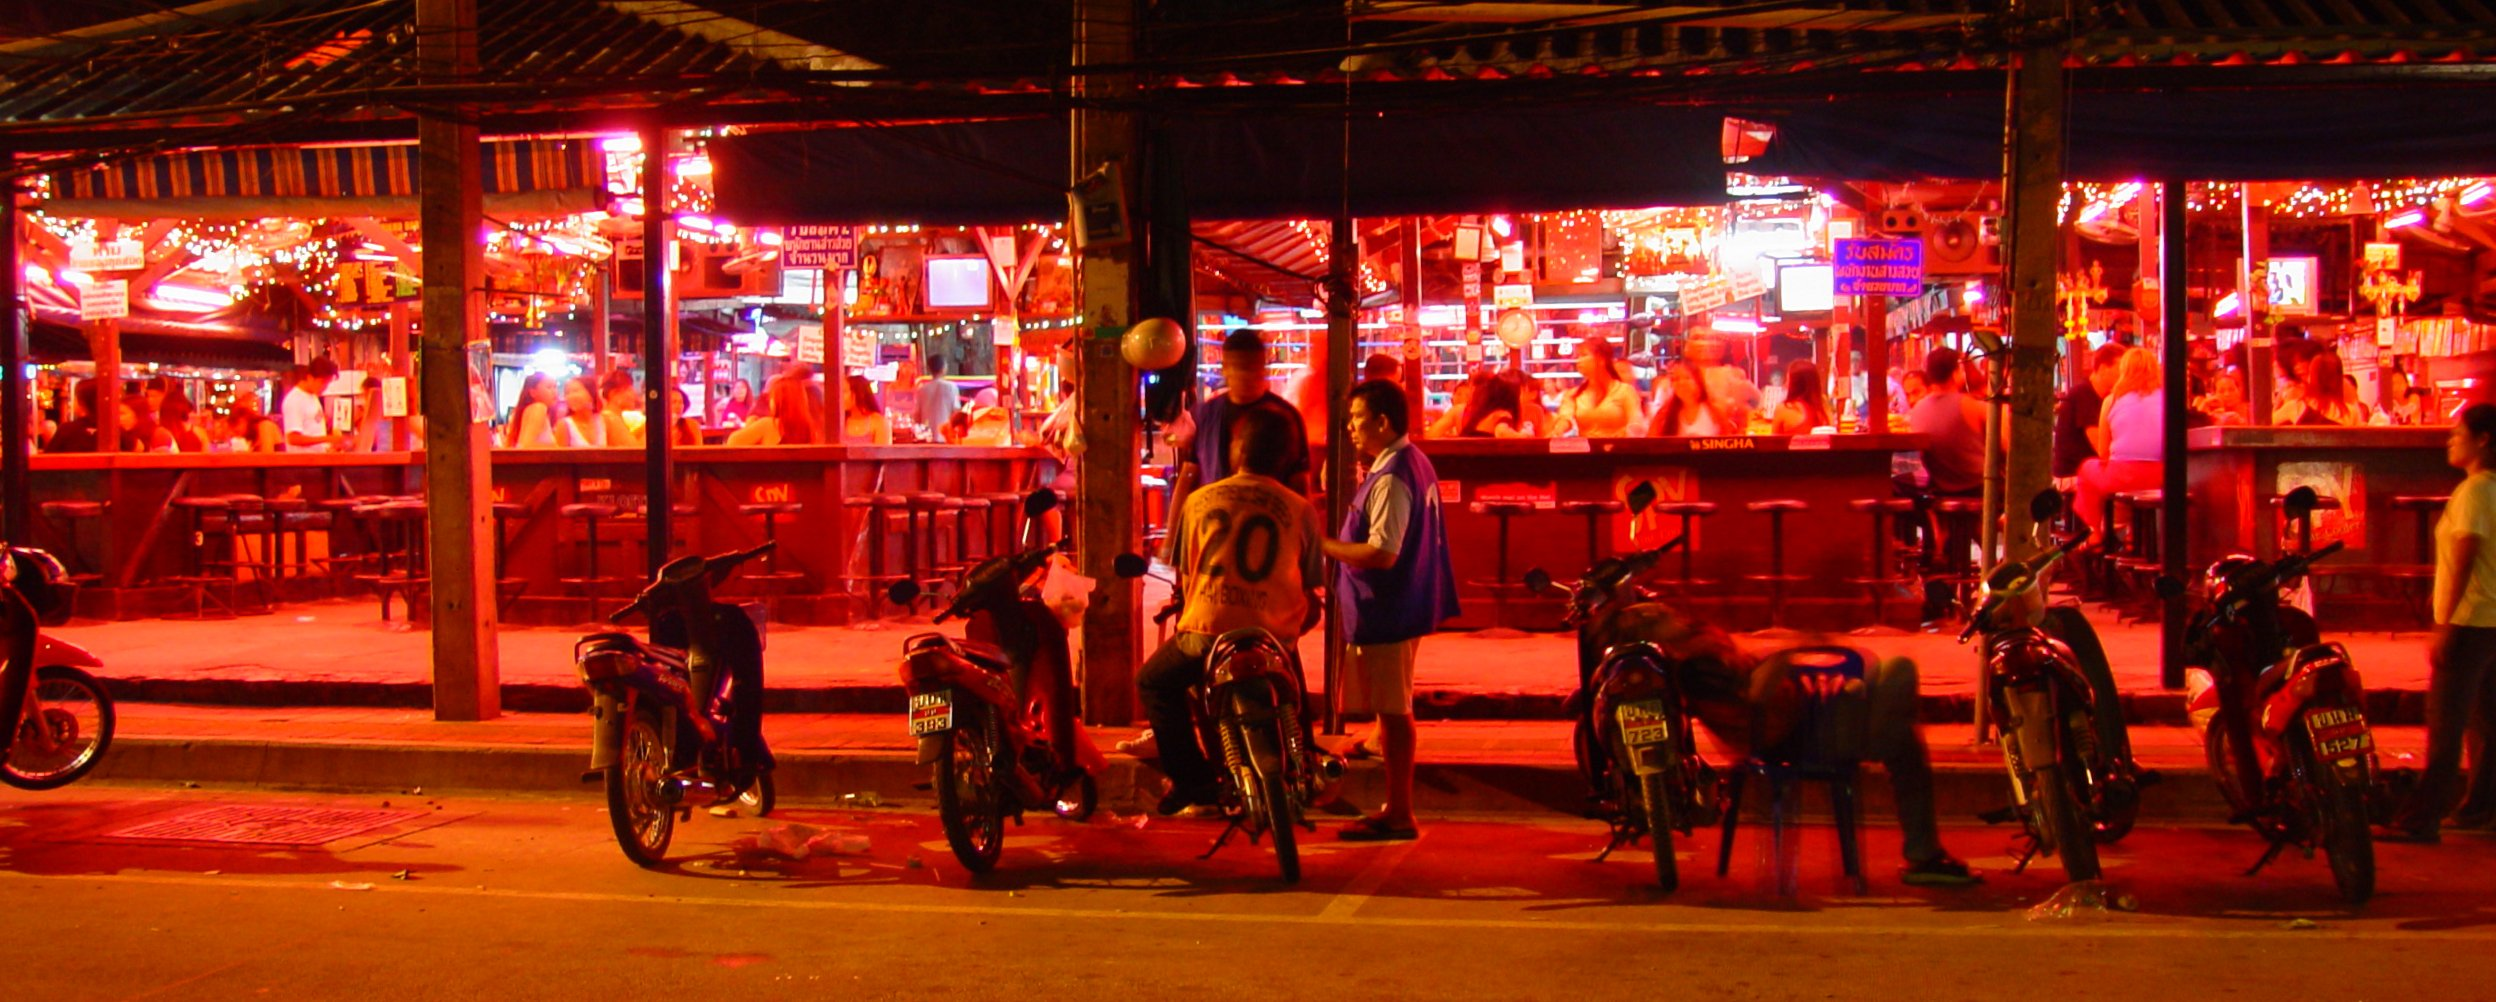 Pattaya Wikivoyage Or You Go For Instance To The Electronic Shop Downstairs At Tukcom Open Air Beer Bars On Beach Road